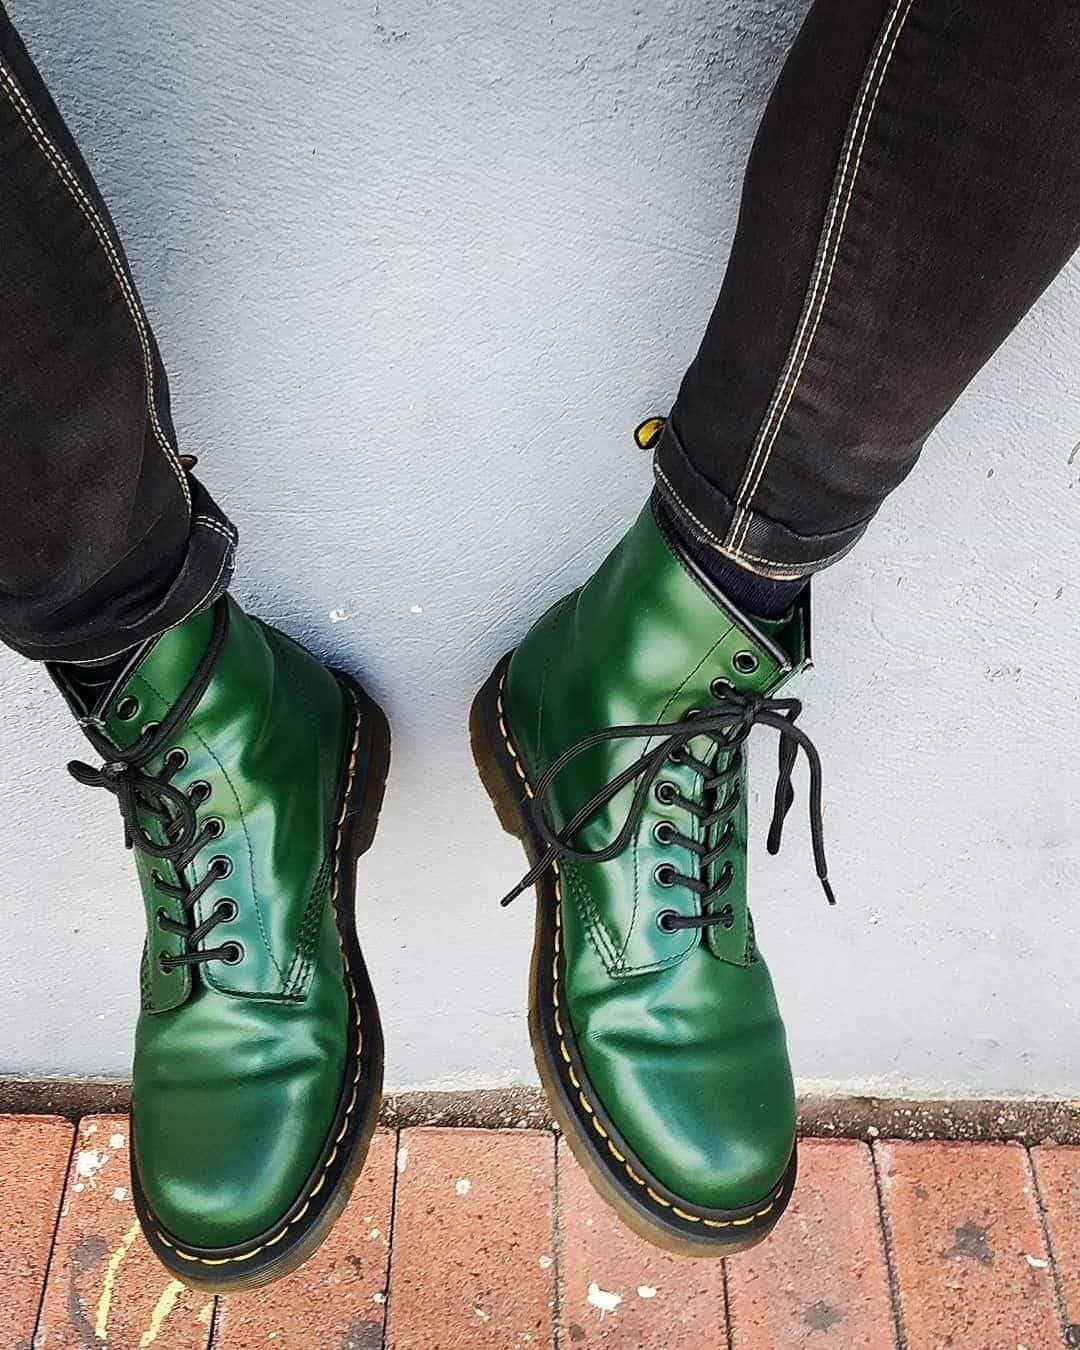 Dr.Martens IndonesiaさんはInstagramを利用しています「April is the